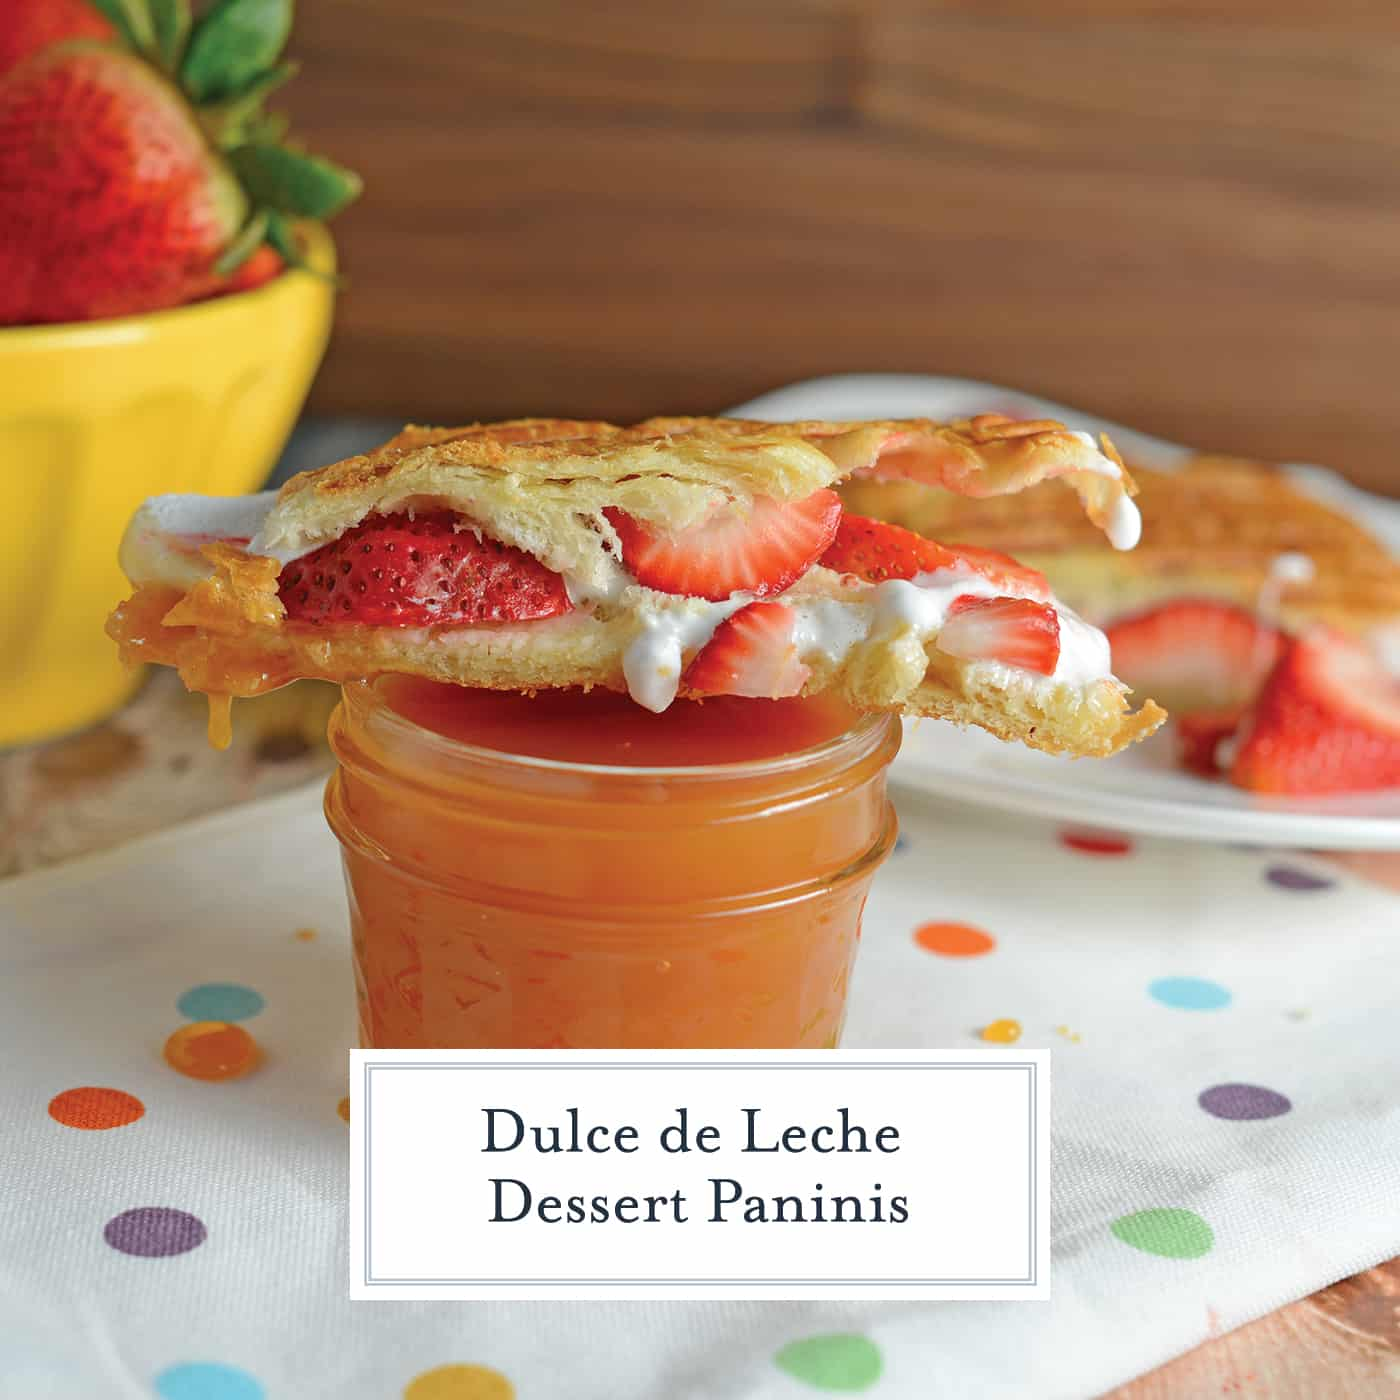 Dulce de Leche Dessert Panini is made up of layers of decadent dulce de leche, gooey marshmallow, and freshly sliced berries all in a buttery croissant! #dessertrecipes #dessertsandwich #dessertswithdulcedeleche www.savoryexperiments.com